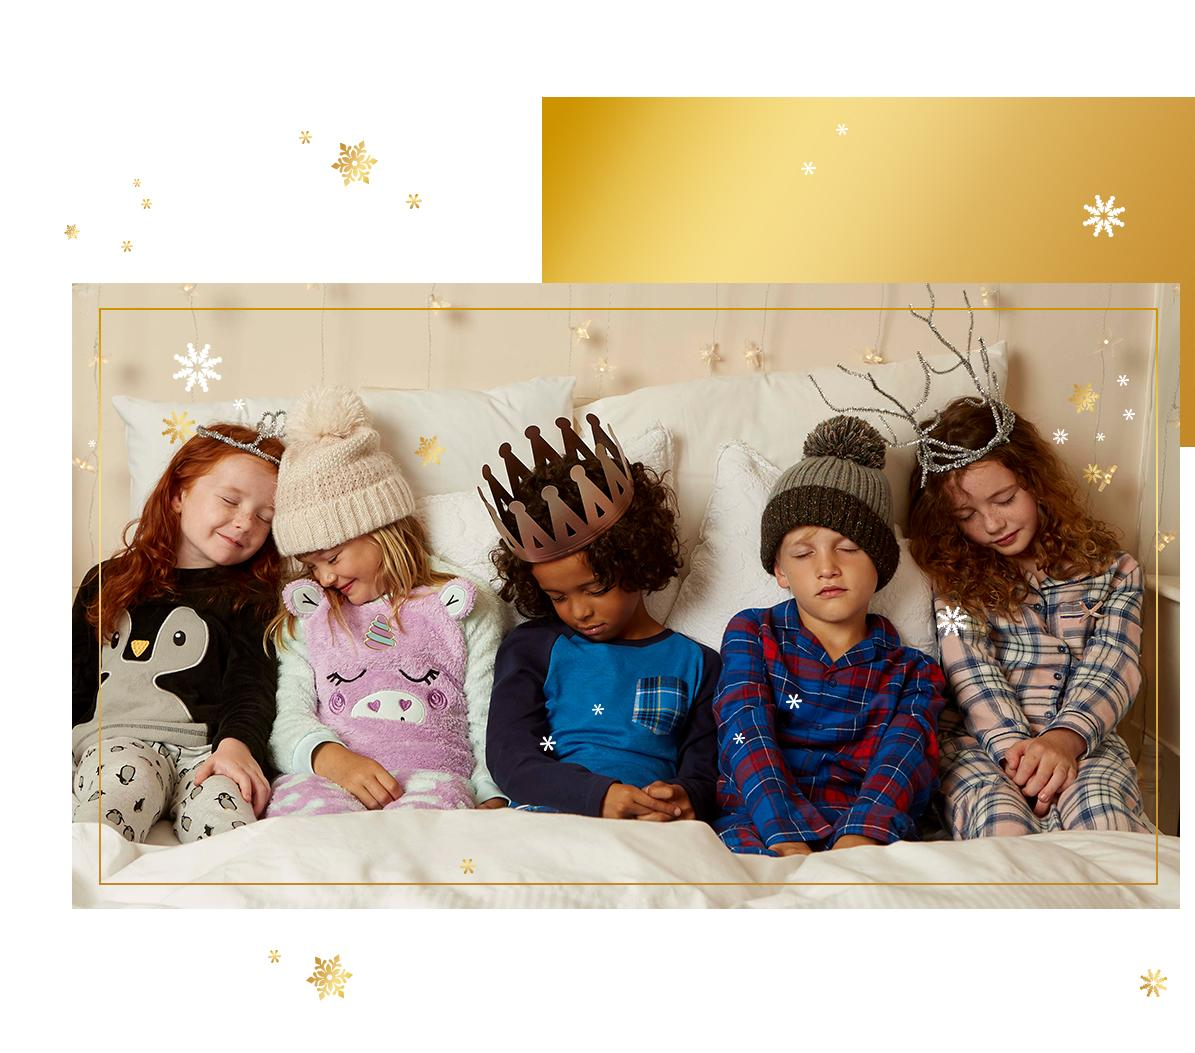 Get little ones set for Christmas morning with snug PJ's